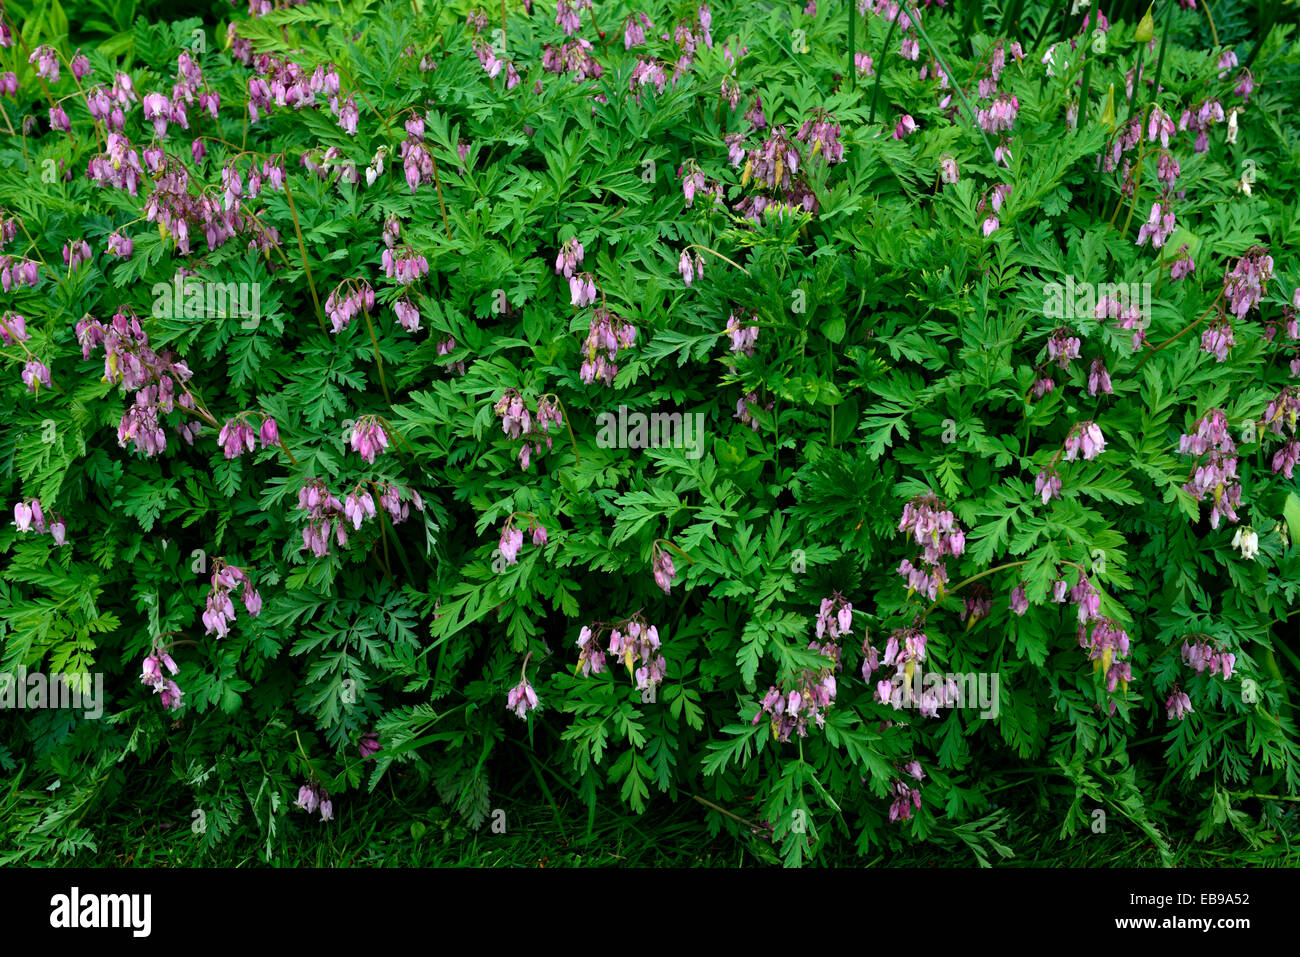 Dicentra eximia pink flowers bleeding hearts ground cover dense dicentra eximia pink flowers bleeding hearts ground cover dense foliage spring flowering perennial rm floral mightylinksfo